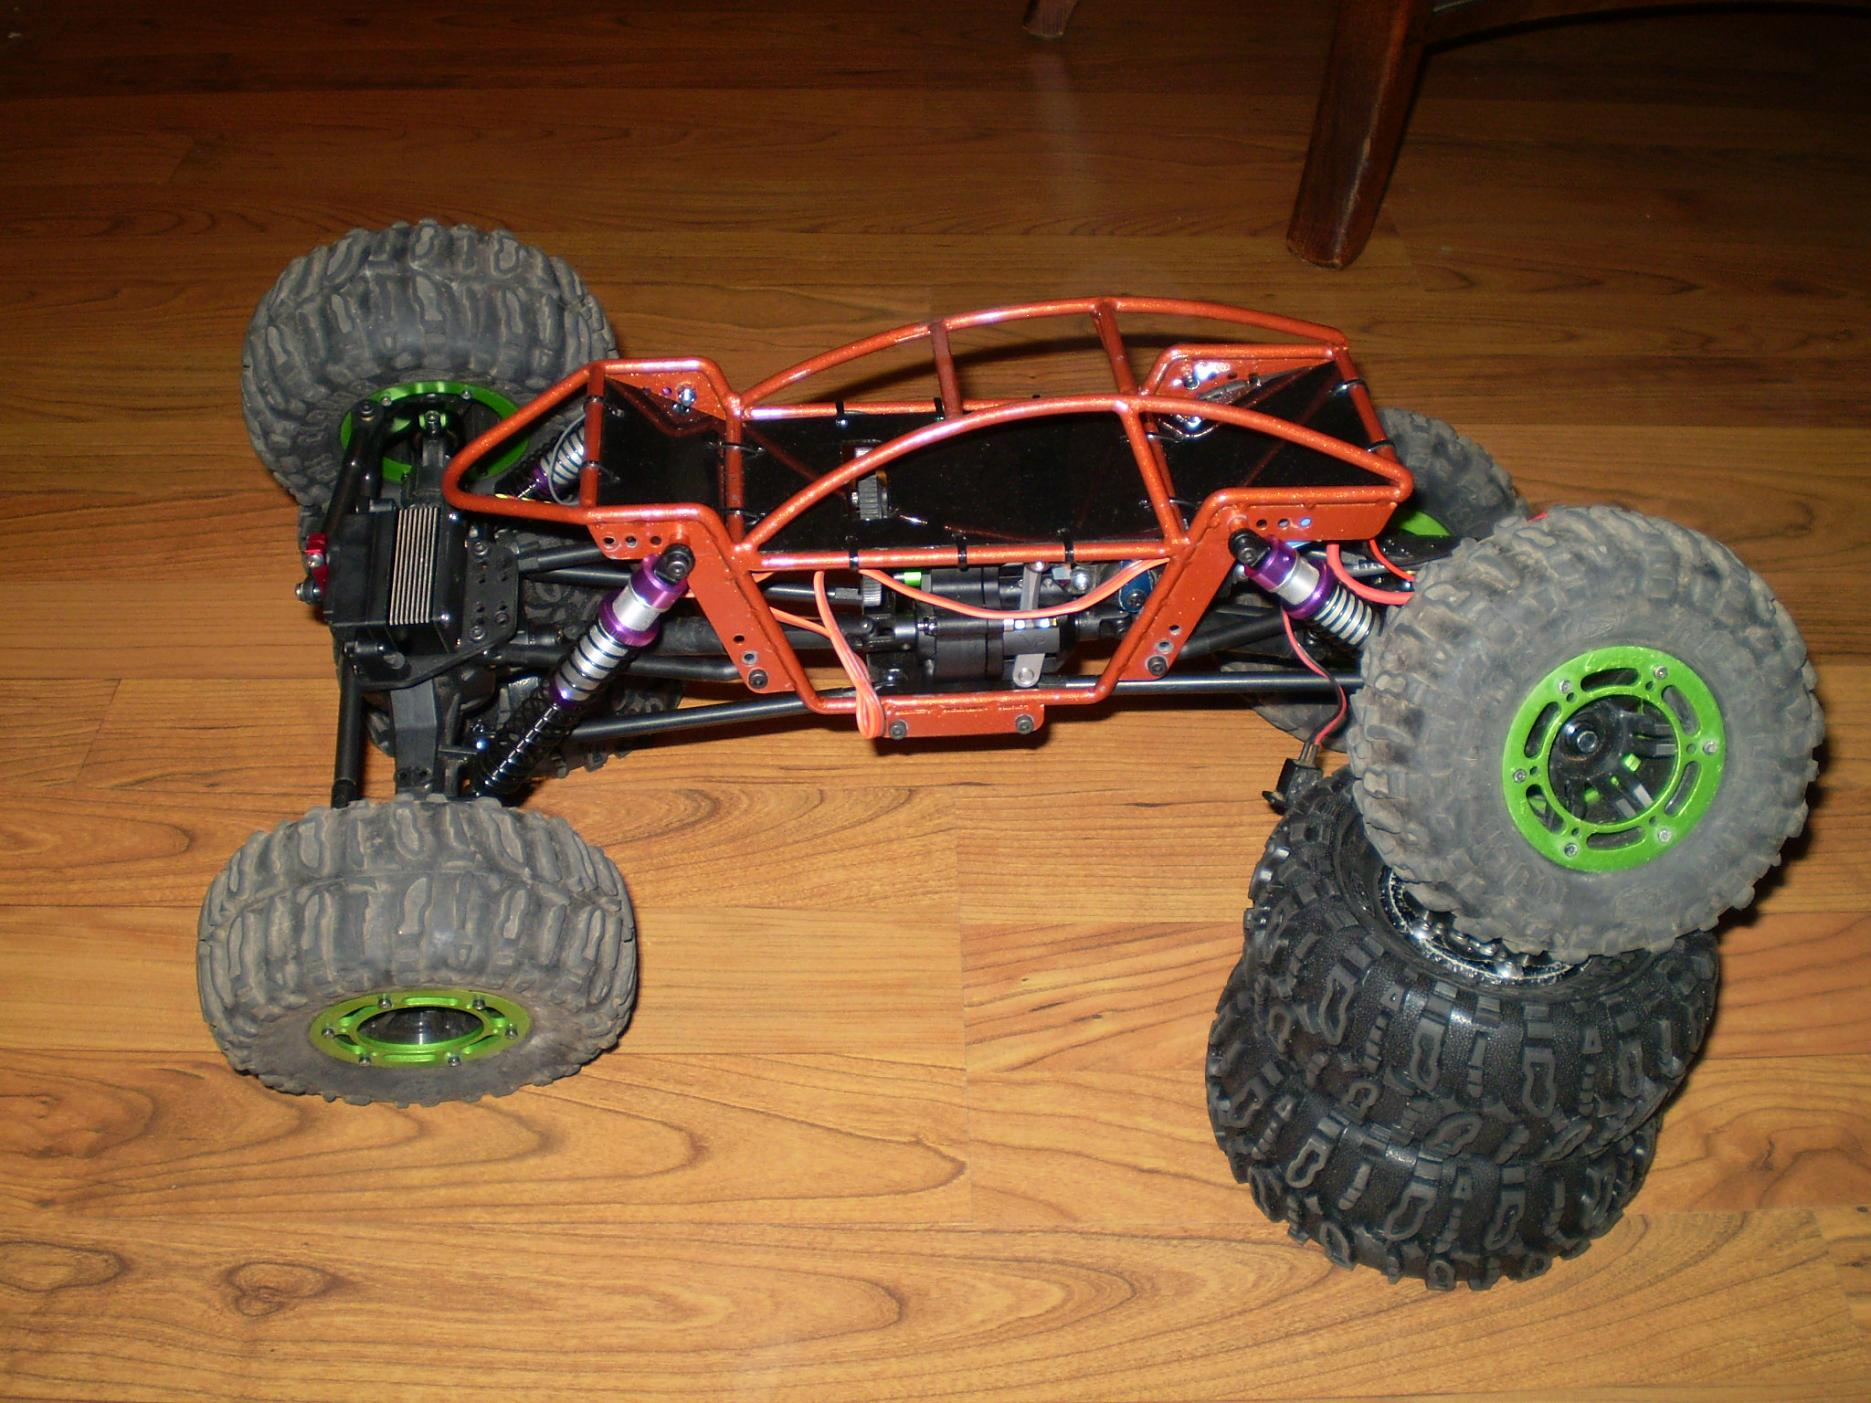 Rock Crawler Chassis : Ax rock crawler with r j tube chassis c tech forums